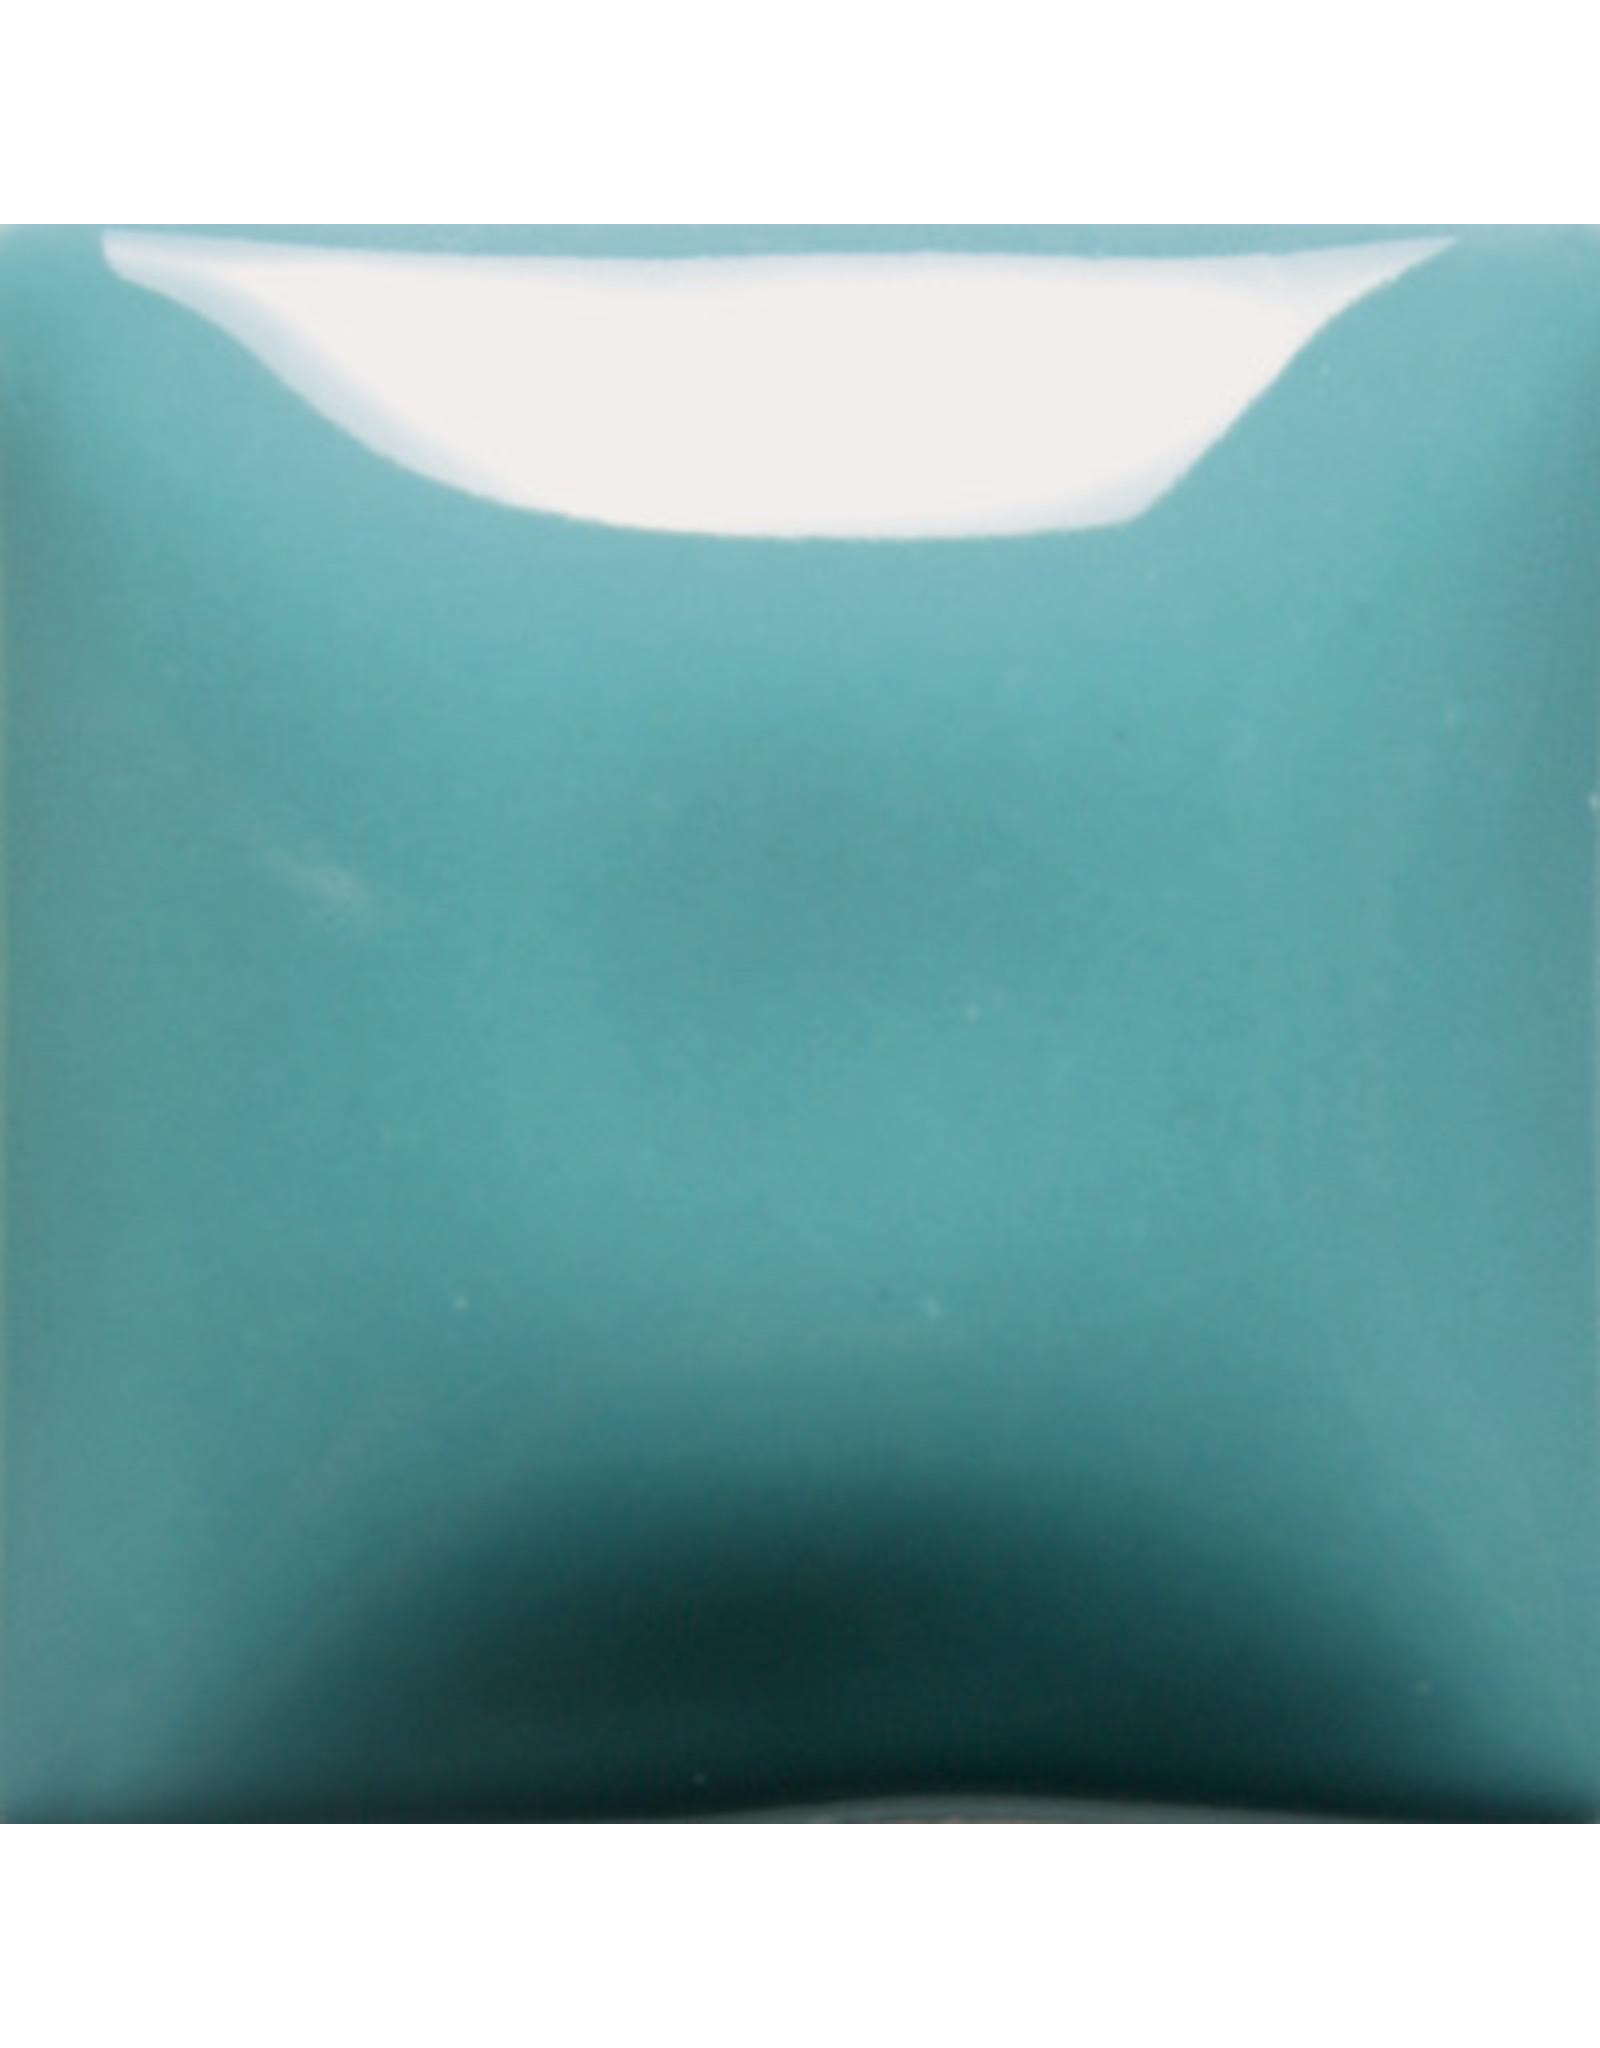 Mayco Mayco Foundations Teal Blue 118ml